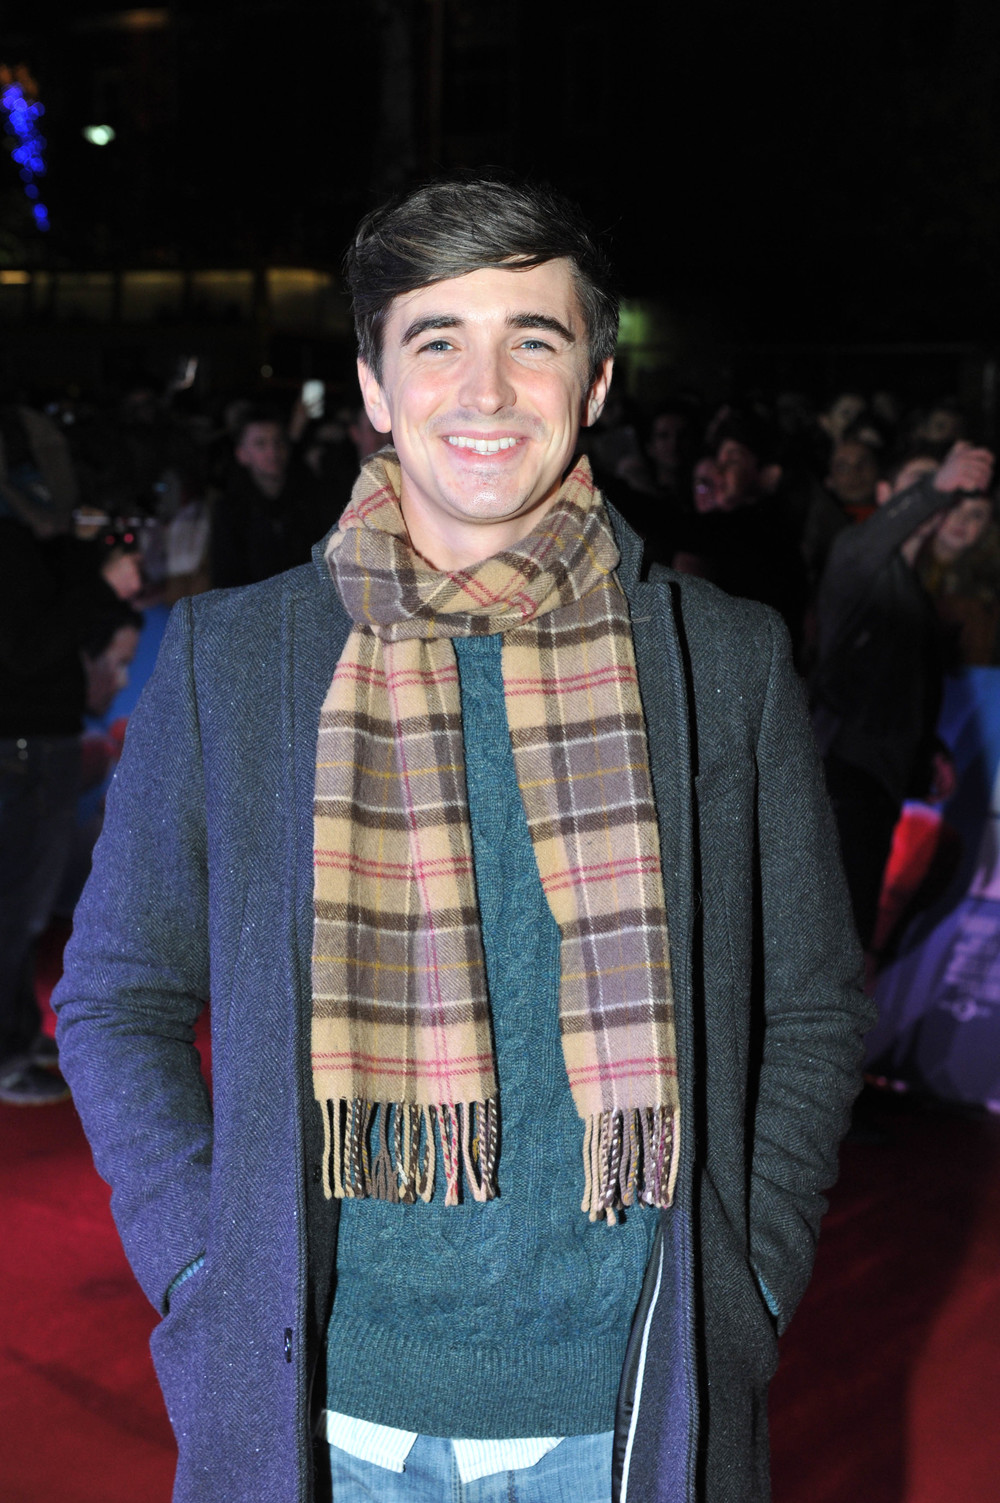 DUBLIN, IRELAND - DECEMBER 7: Chef Donal Skehan attends the Dublin Premiere of 'Daddy's Home' at the Savoy Cinema on December 7, 2015 in Dublin, Ireland. (Photo by Clodagh Kilcoyne /Getty Images for Paramount Pictures)